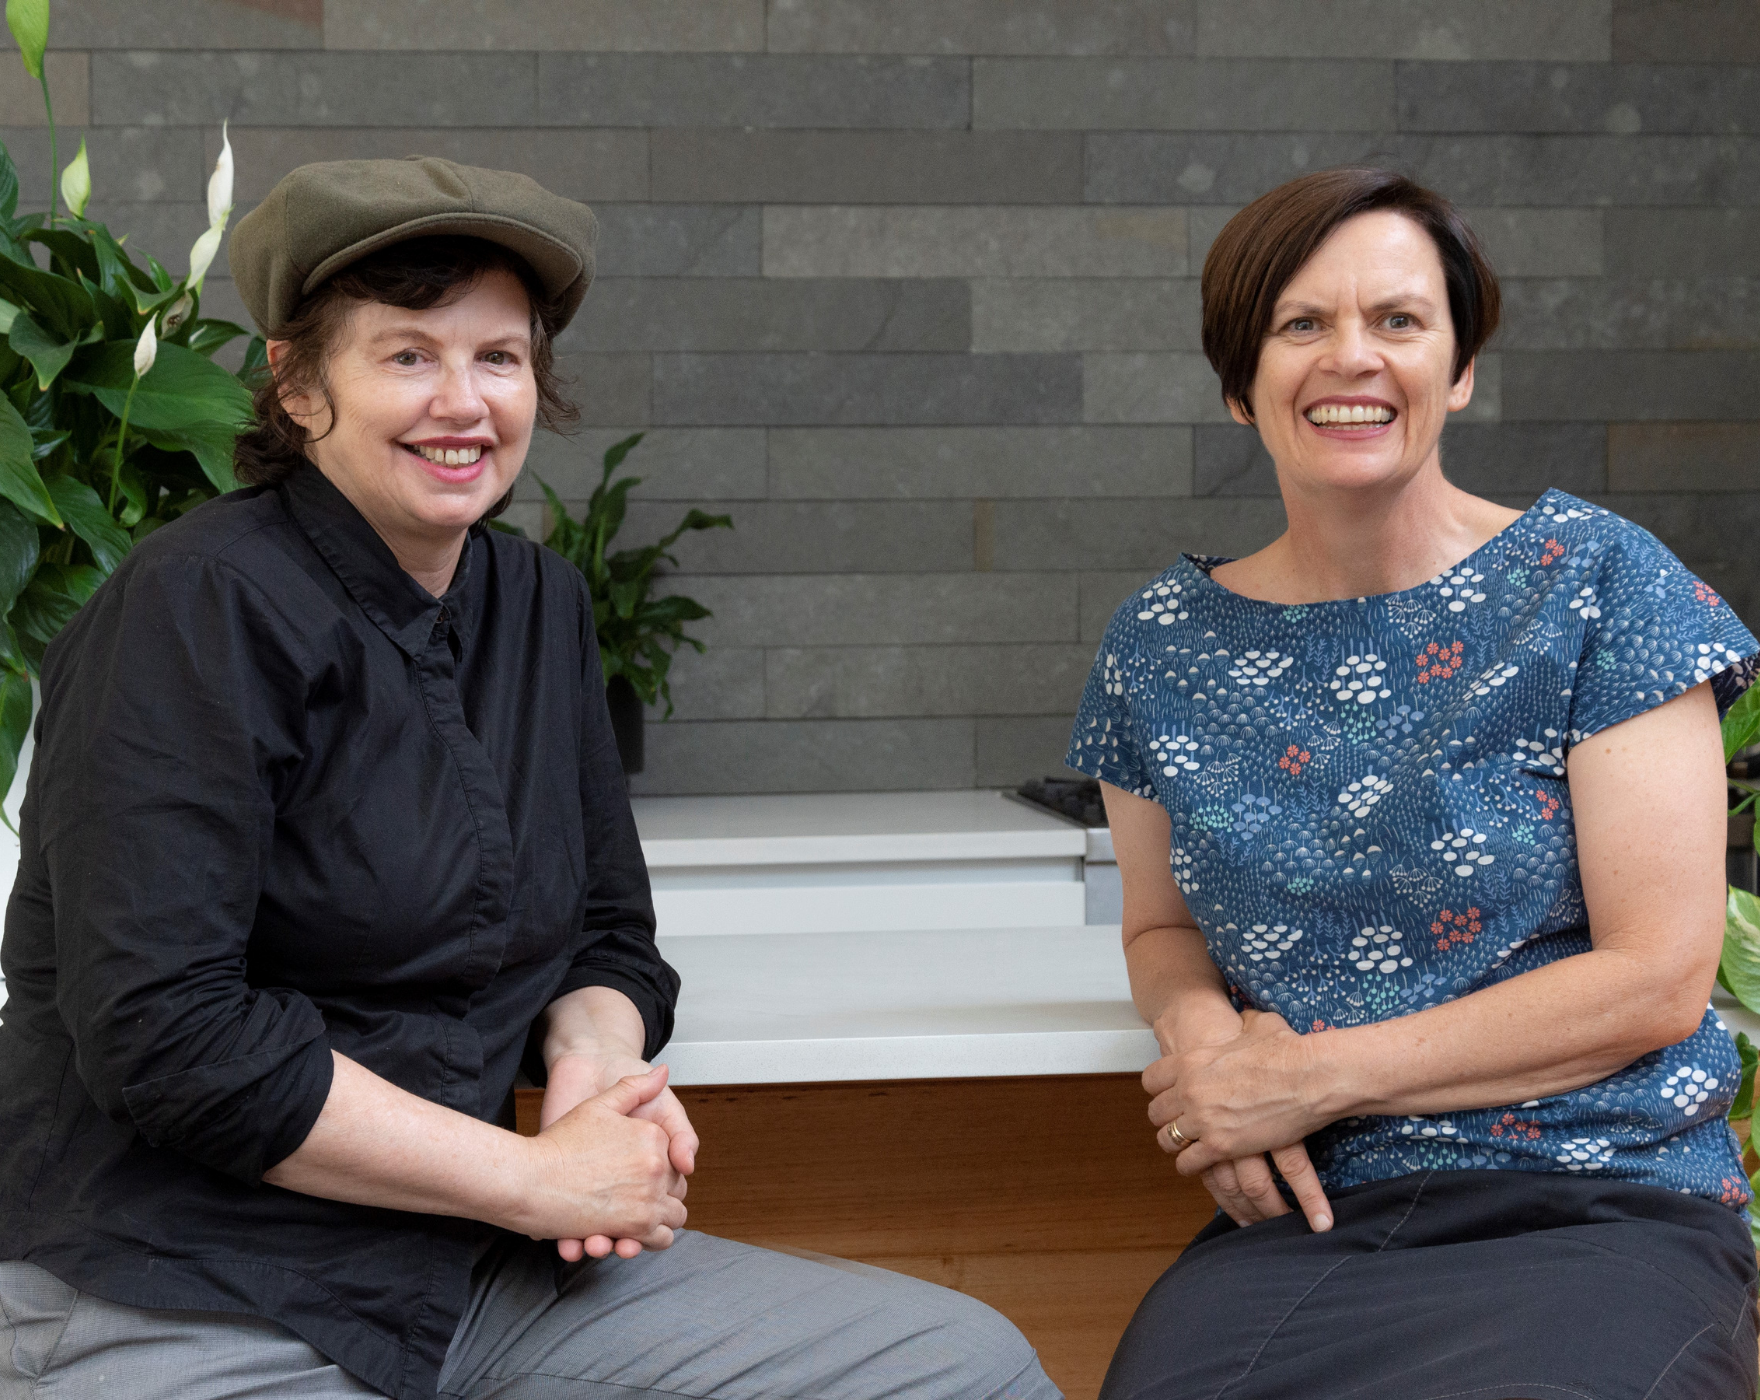 Kerry (left) & Katie (right), NueBar Founders